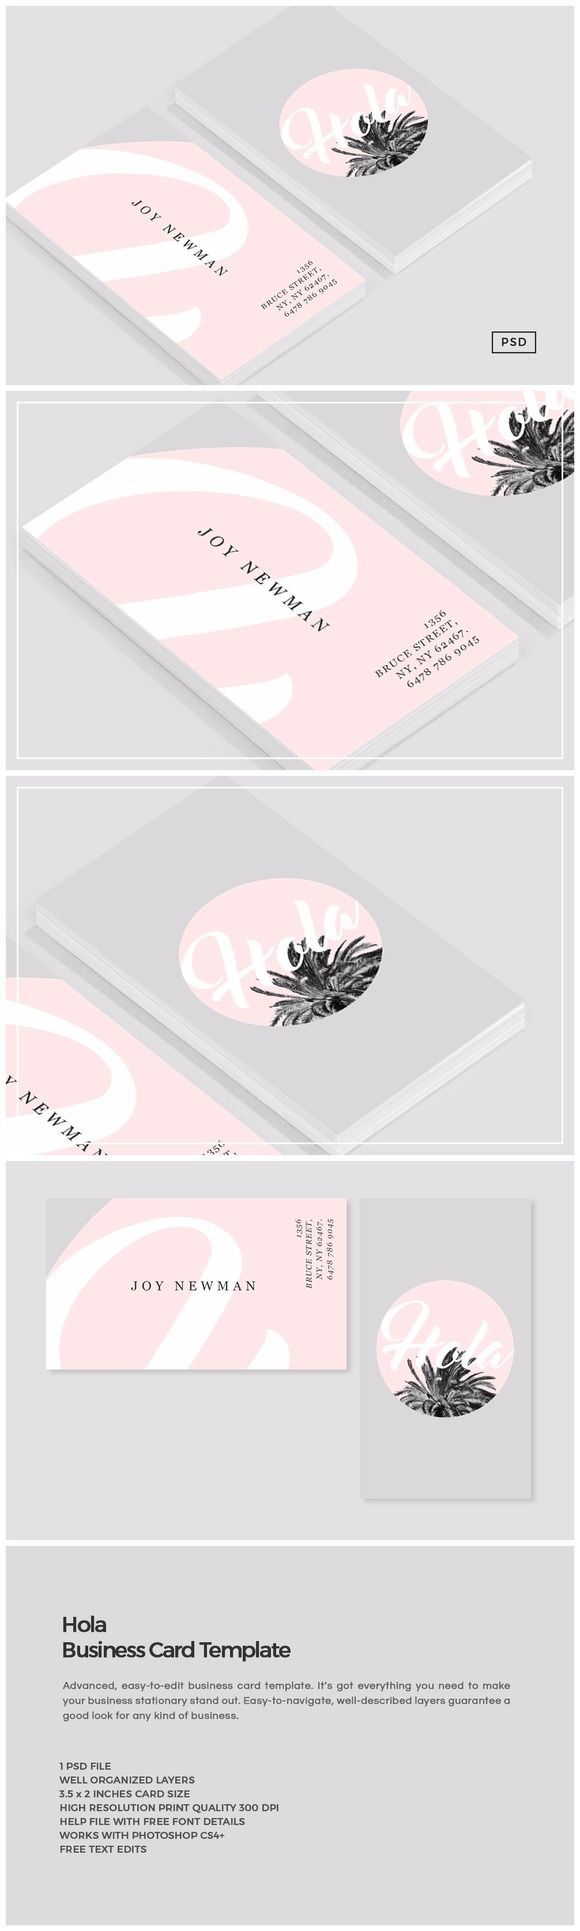 Hola business card template creativemarket design art hola business card template by the design label on business card construction free printable reheart Gallery